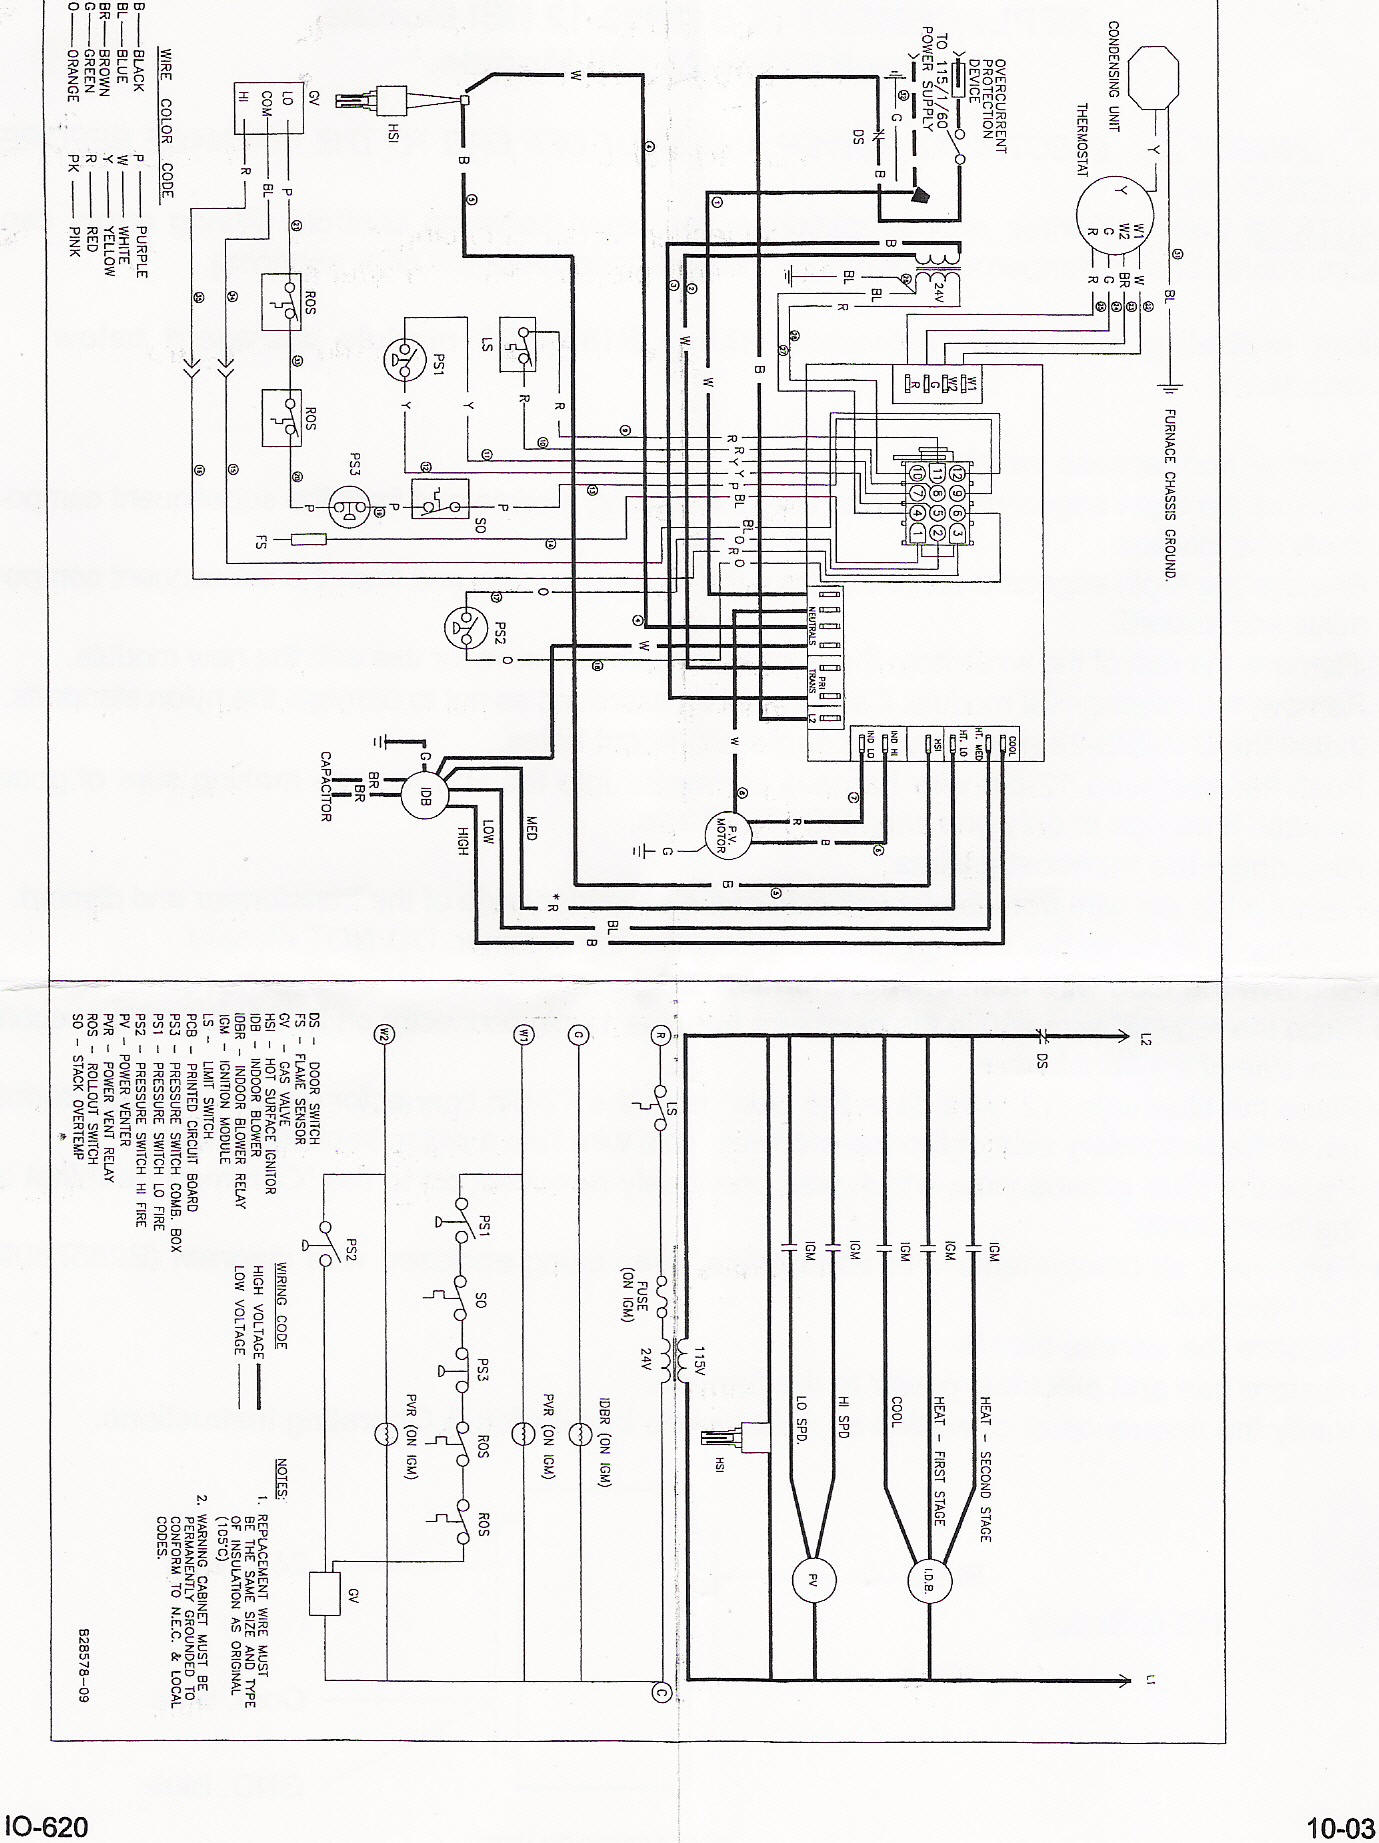 goodman control board b18099 23 instructions amana heat pump wiring diagram wiring amana for diagram furnace guva090bx50 #1